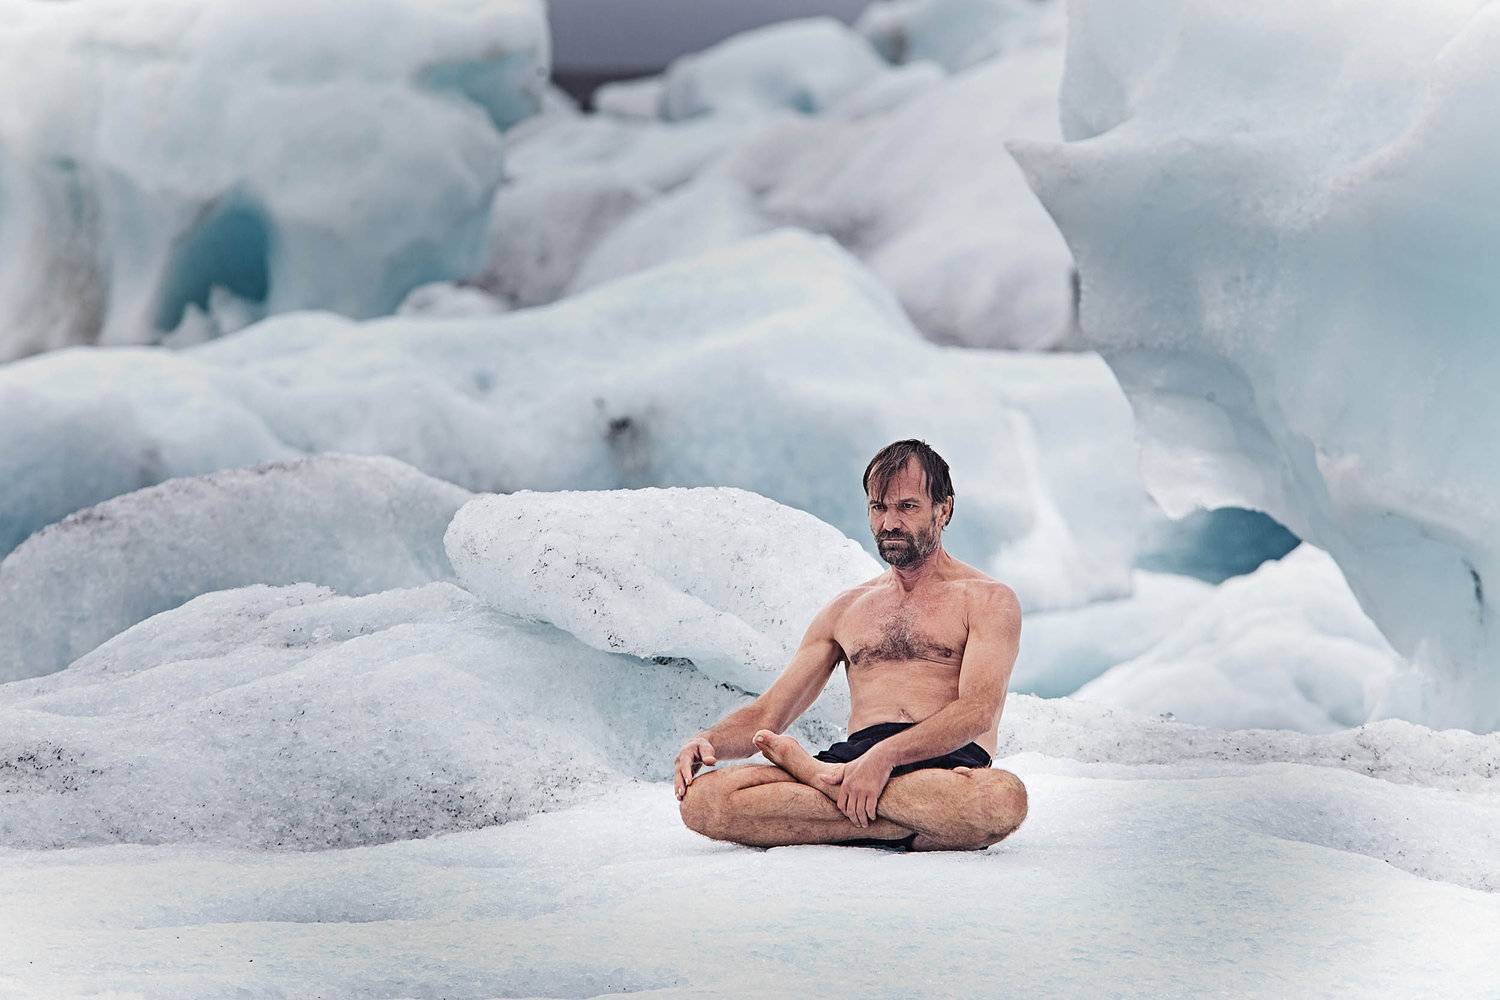 wim hof method ice bath